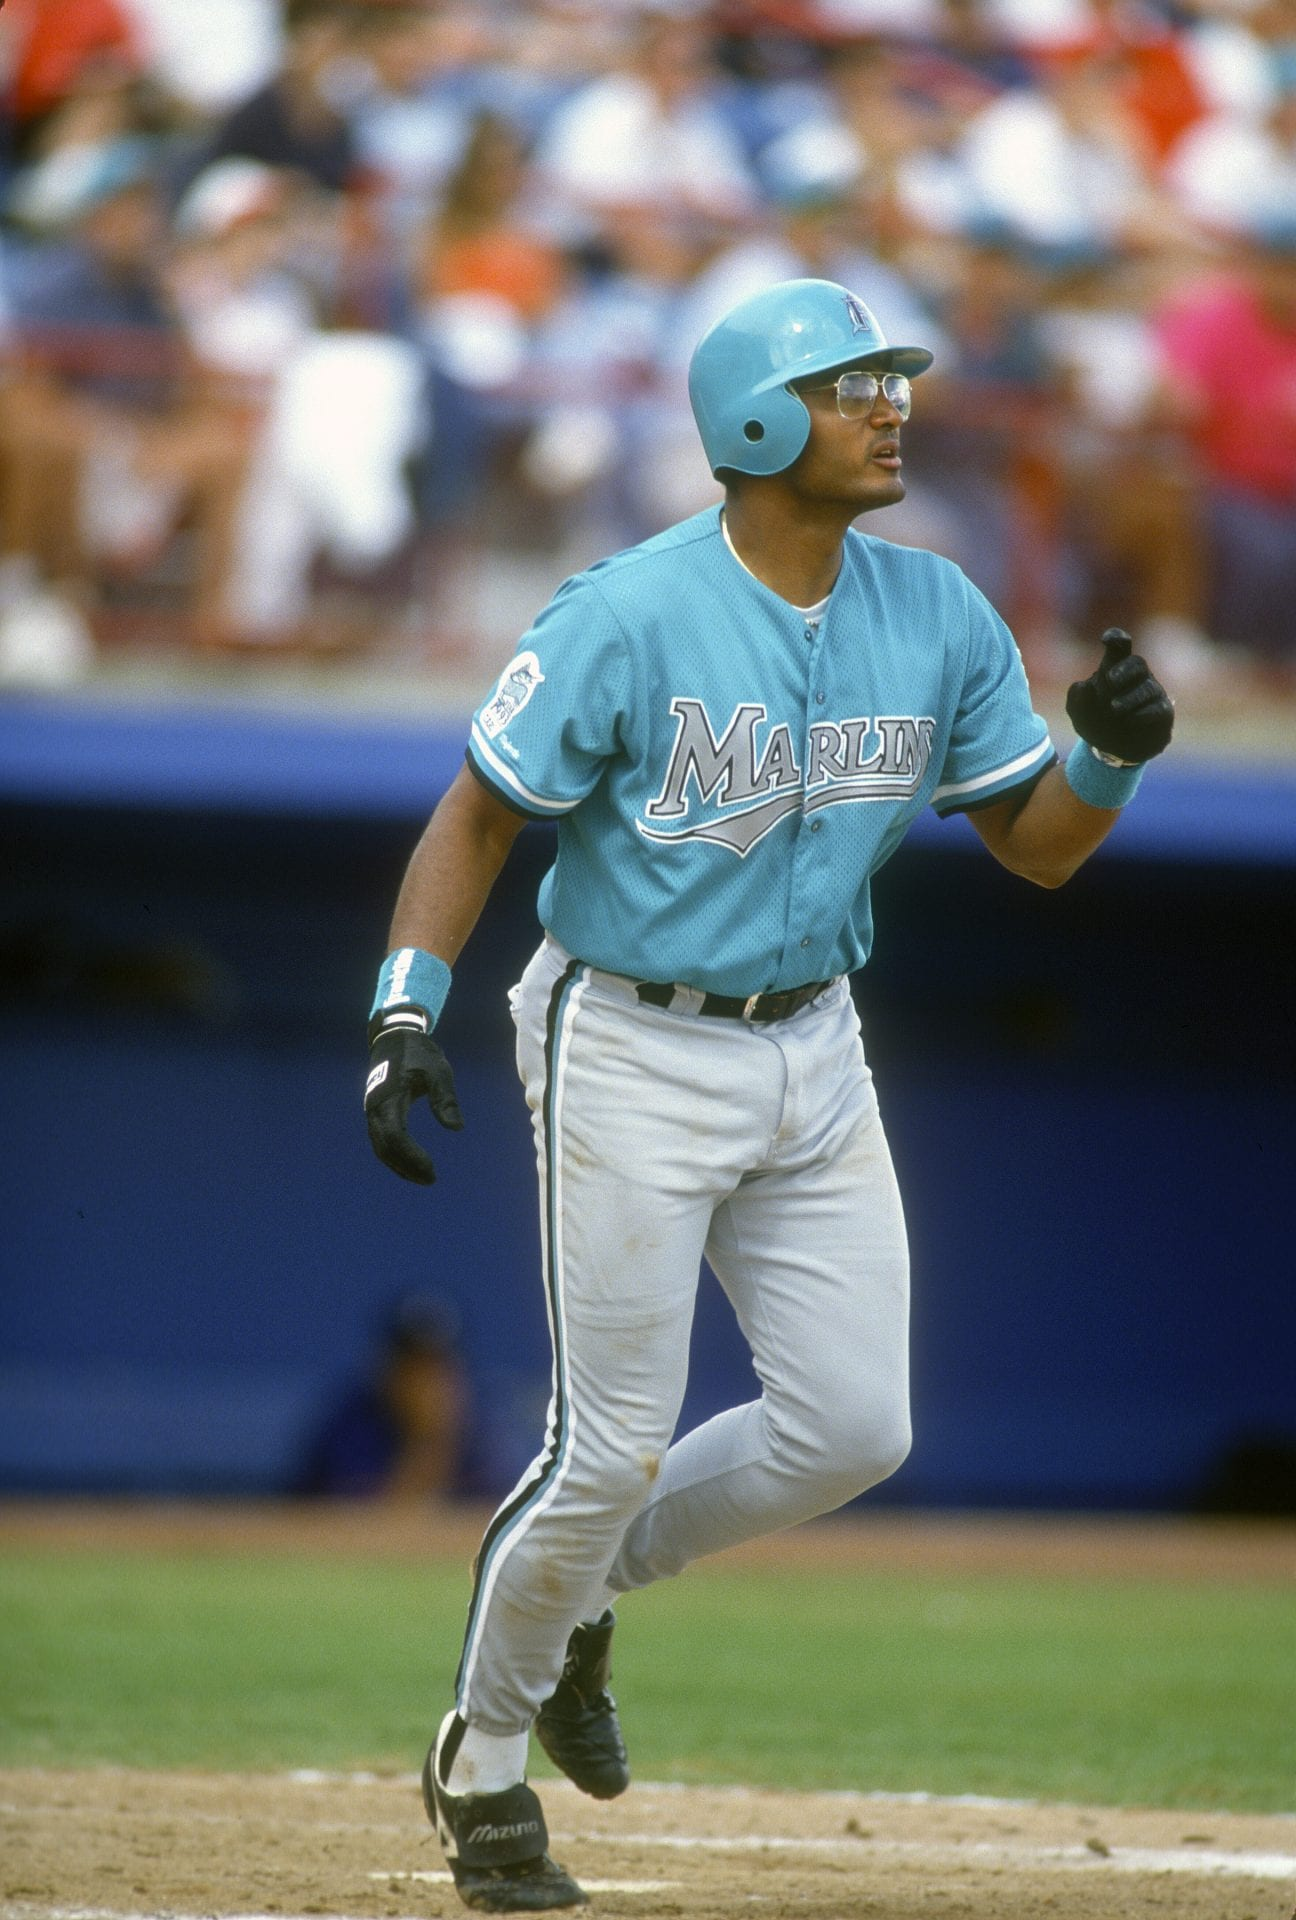 Miami Marlins teal uniforms early 1990s